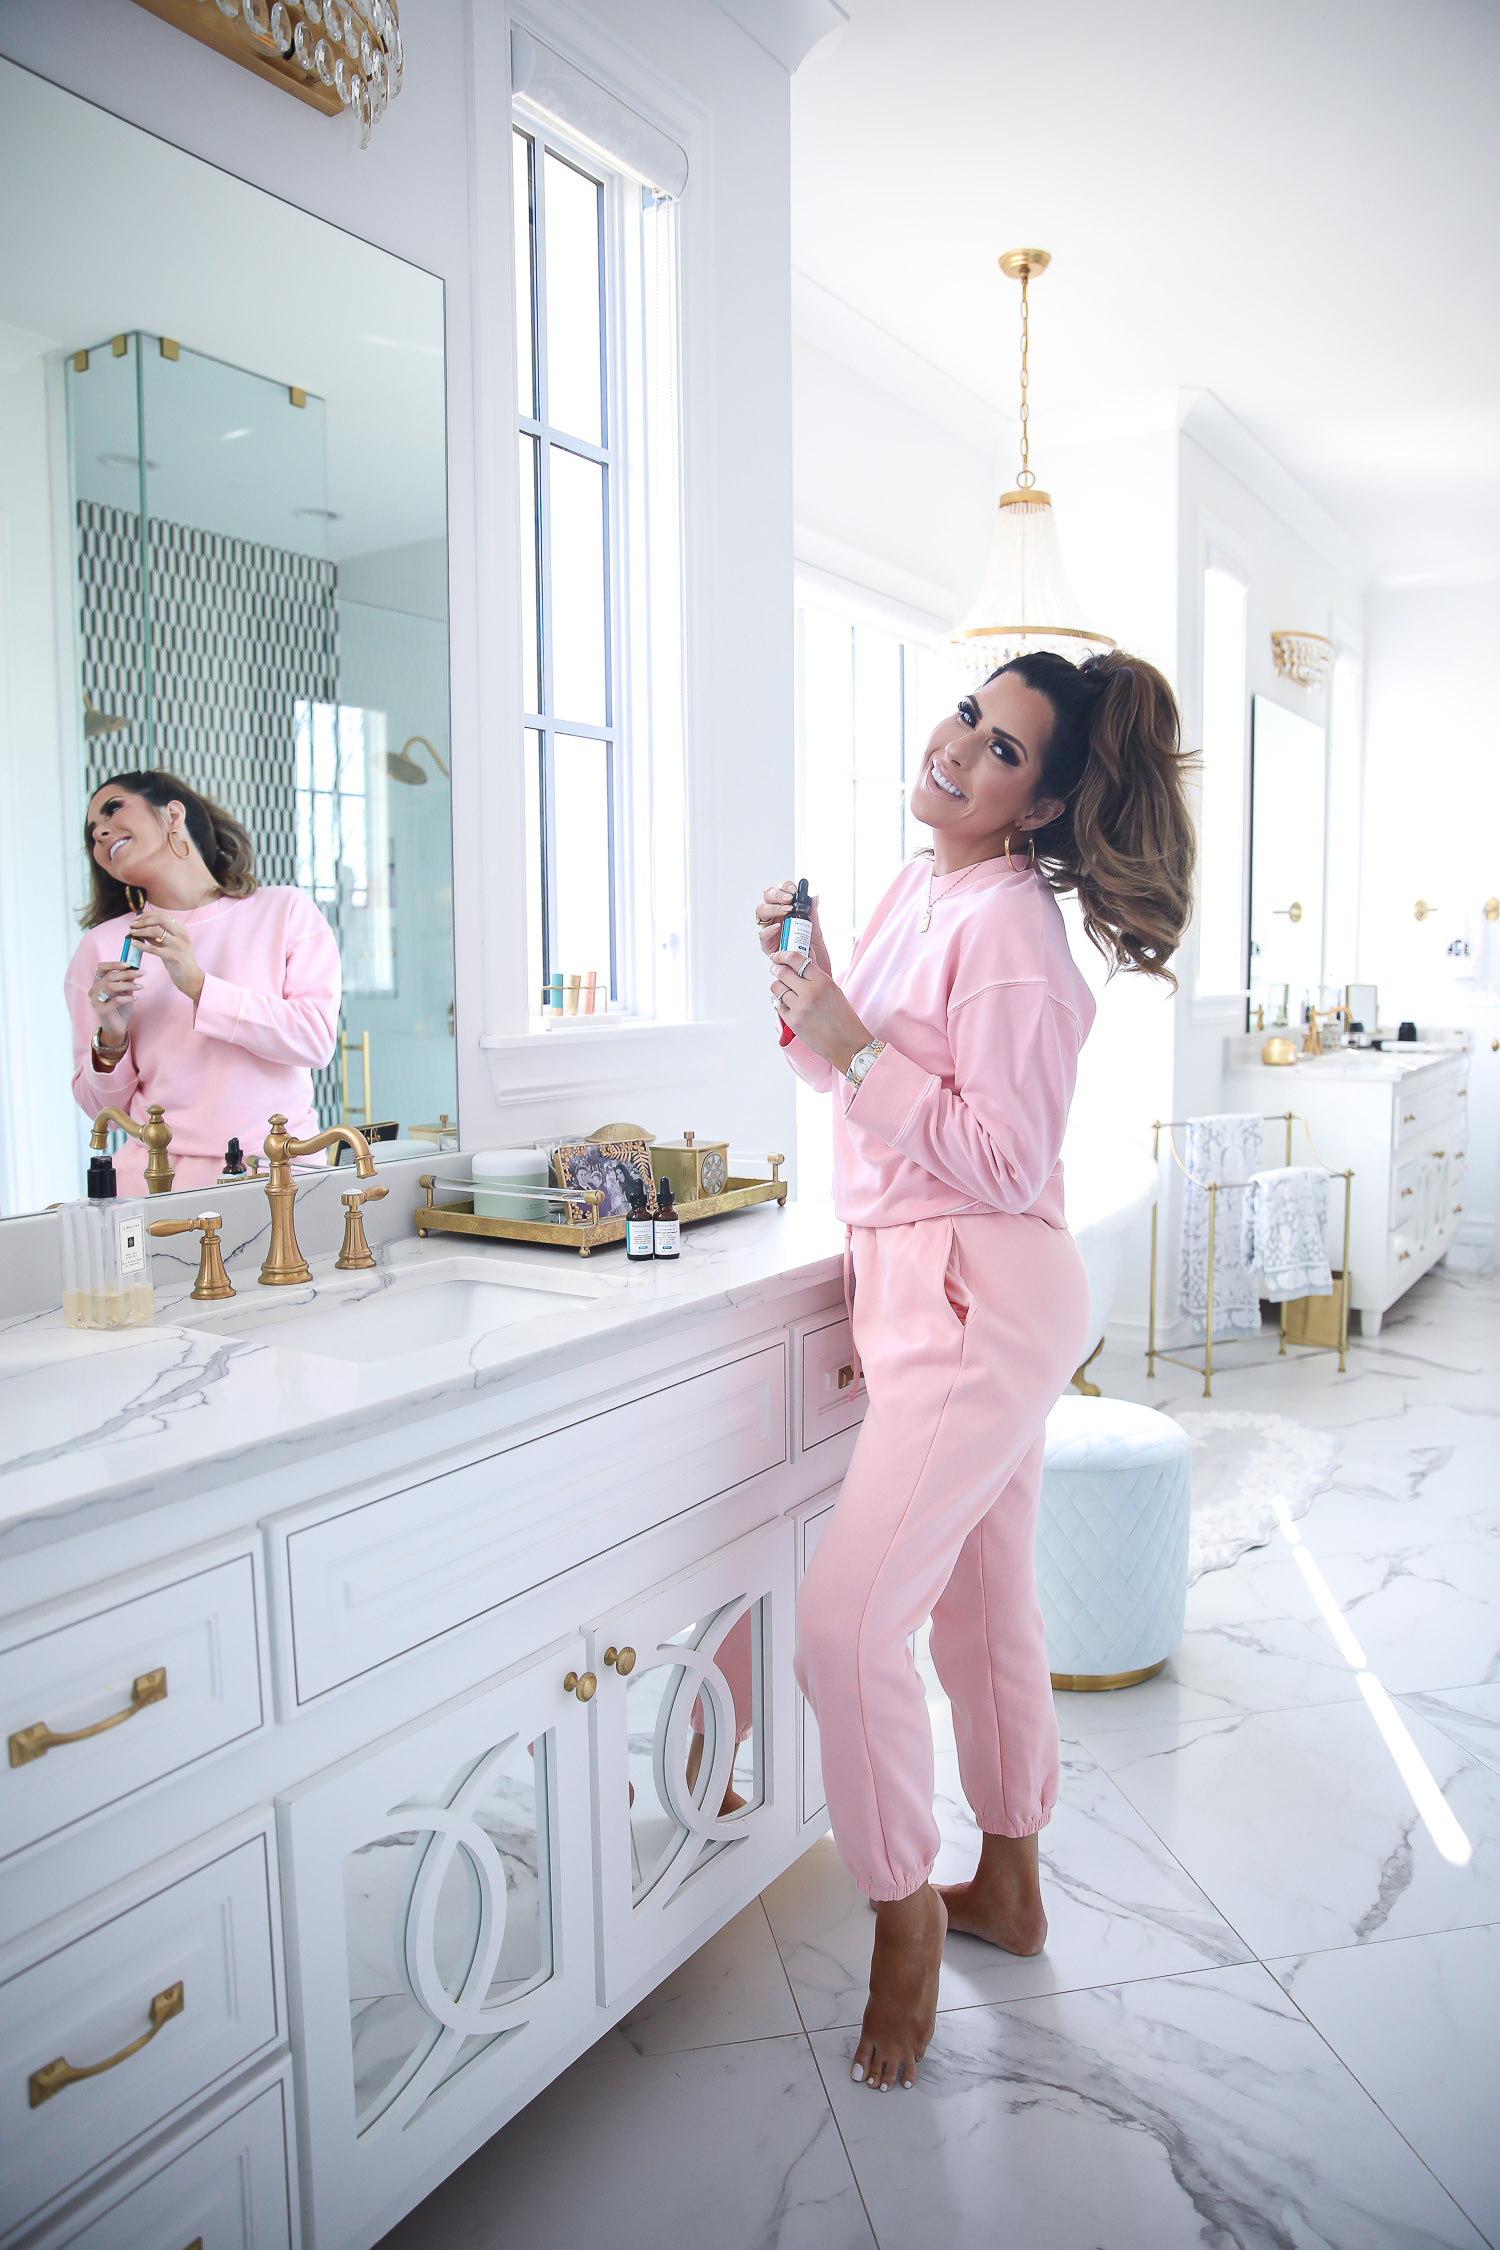 Skinceuticals CE Ferulic SilyMarin Phloretin CF, best Vitamim C serum, CE Ferulic vs Phloretin CF, why do you need Vitamin C, emily gemma skincare | Vitamin C Skincare by popular beauty blog, The Sweetest Thing: image of Emily Gemma standing in her bathroom and wearing a pink sweatsuit while holding a bottle SkinCeuticals skin care product.